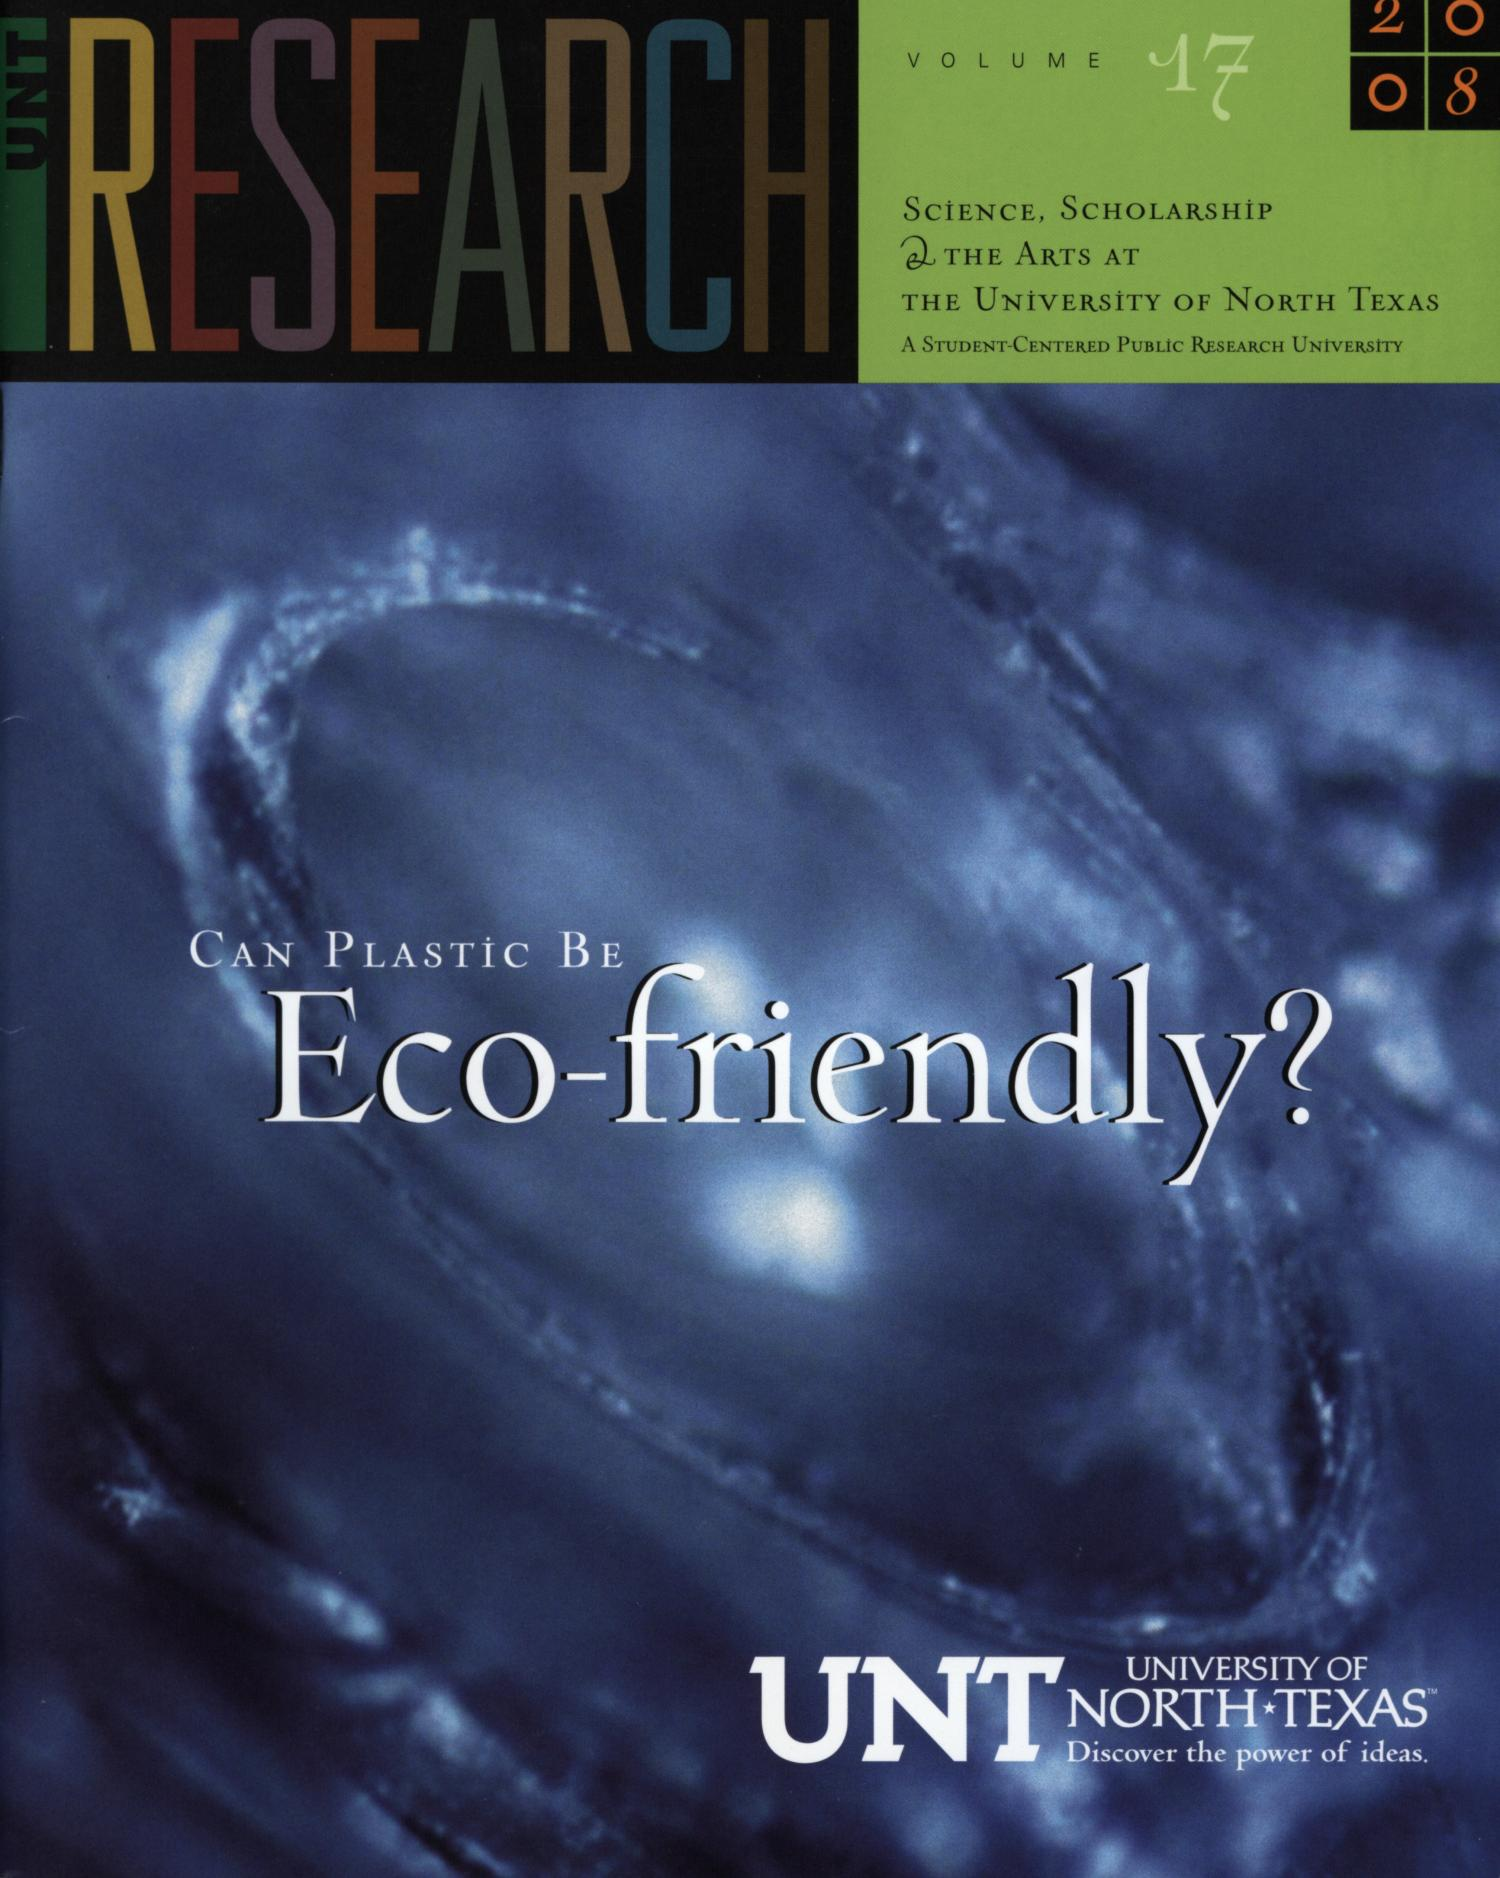 UNT Research, Volume 17, 2008                                                                                                      Front Cover